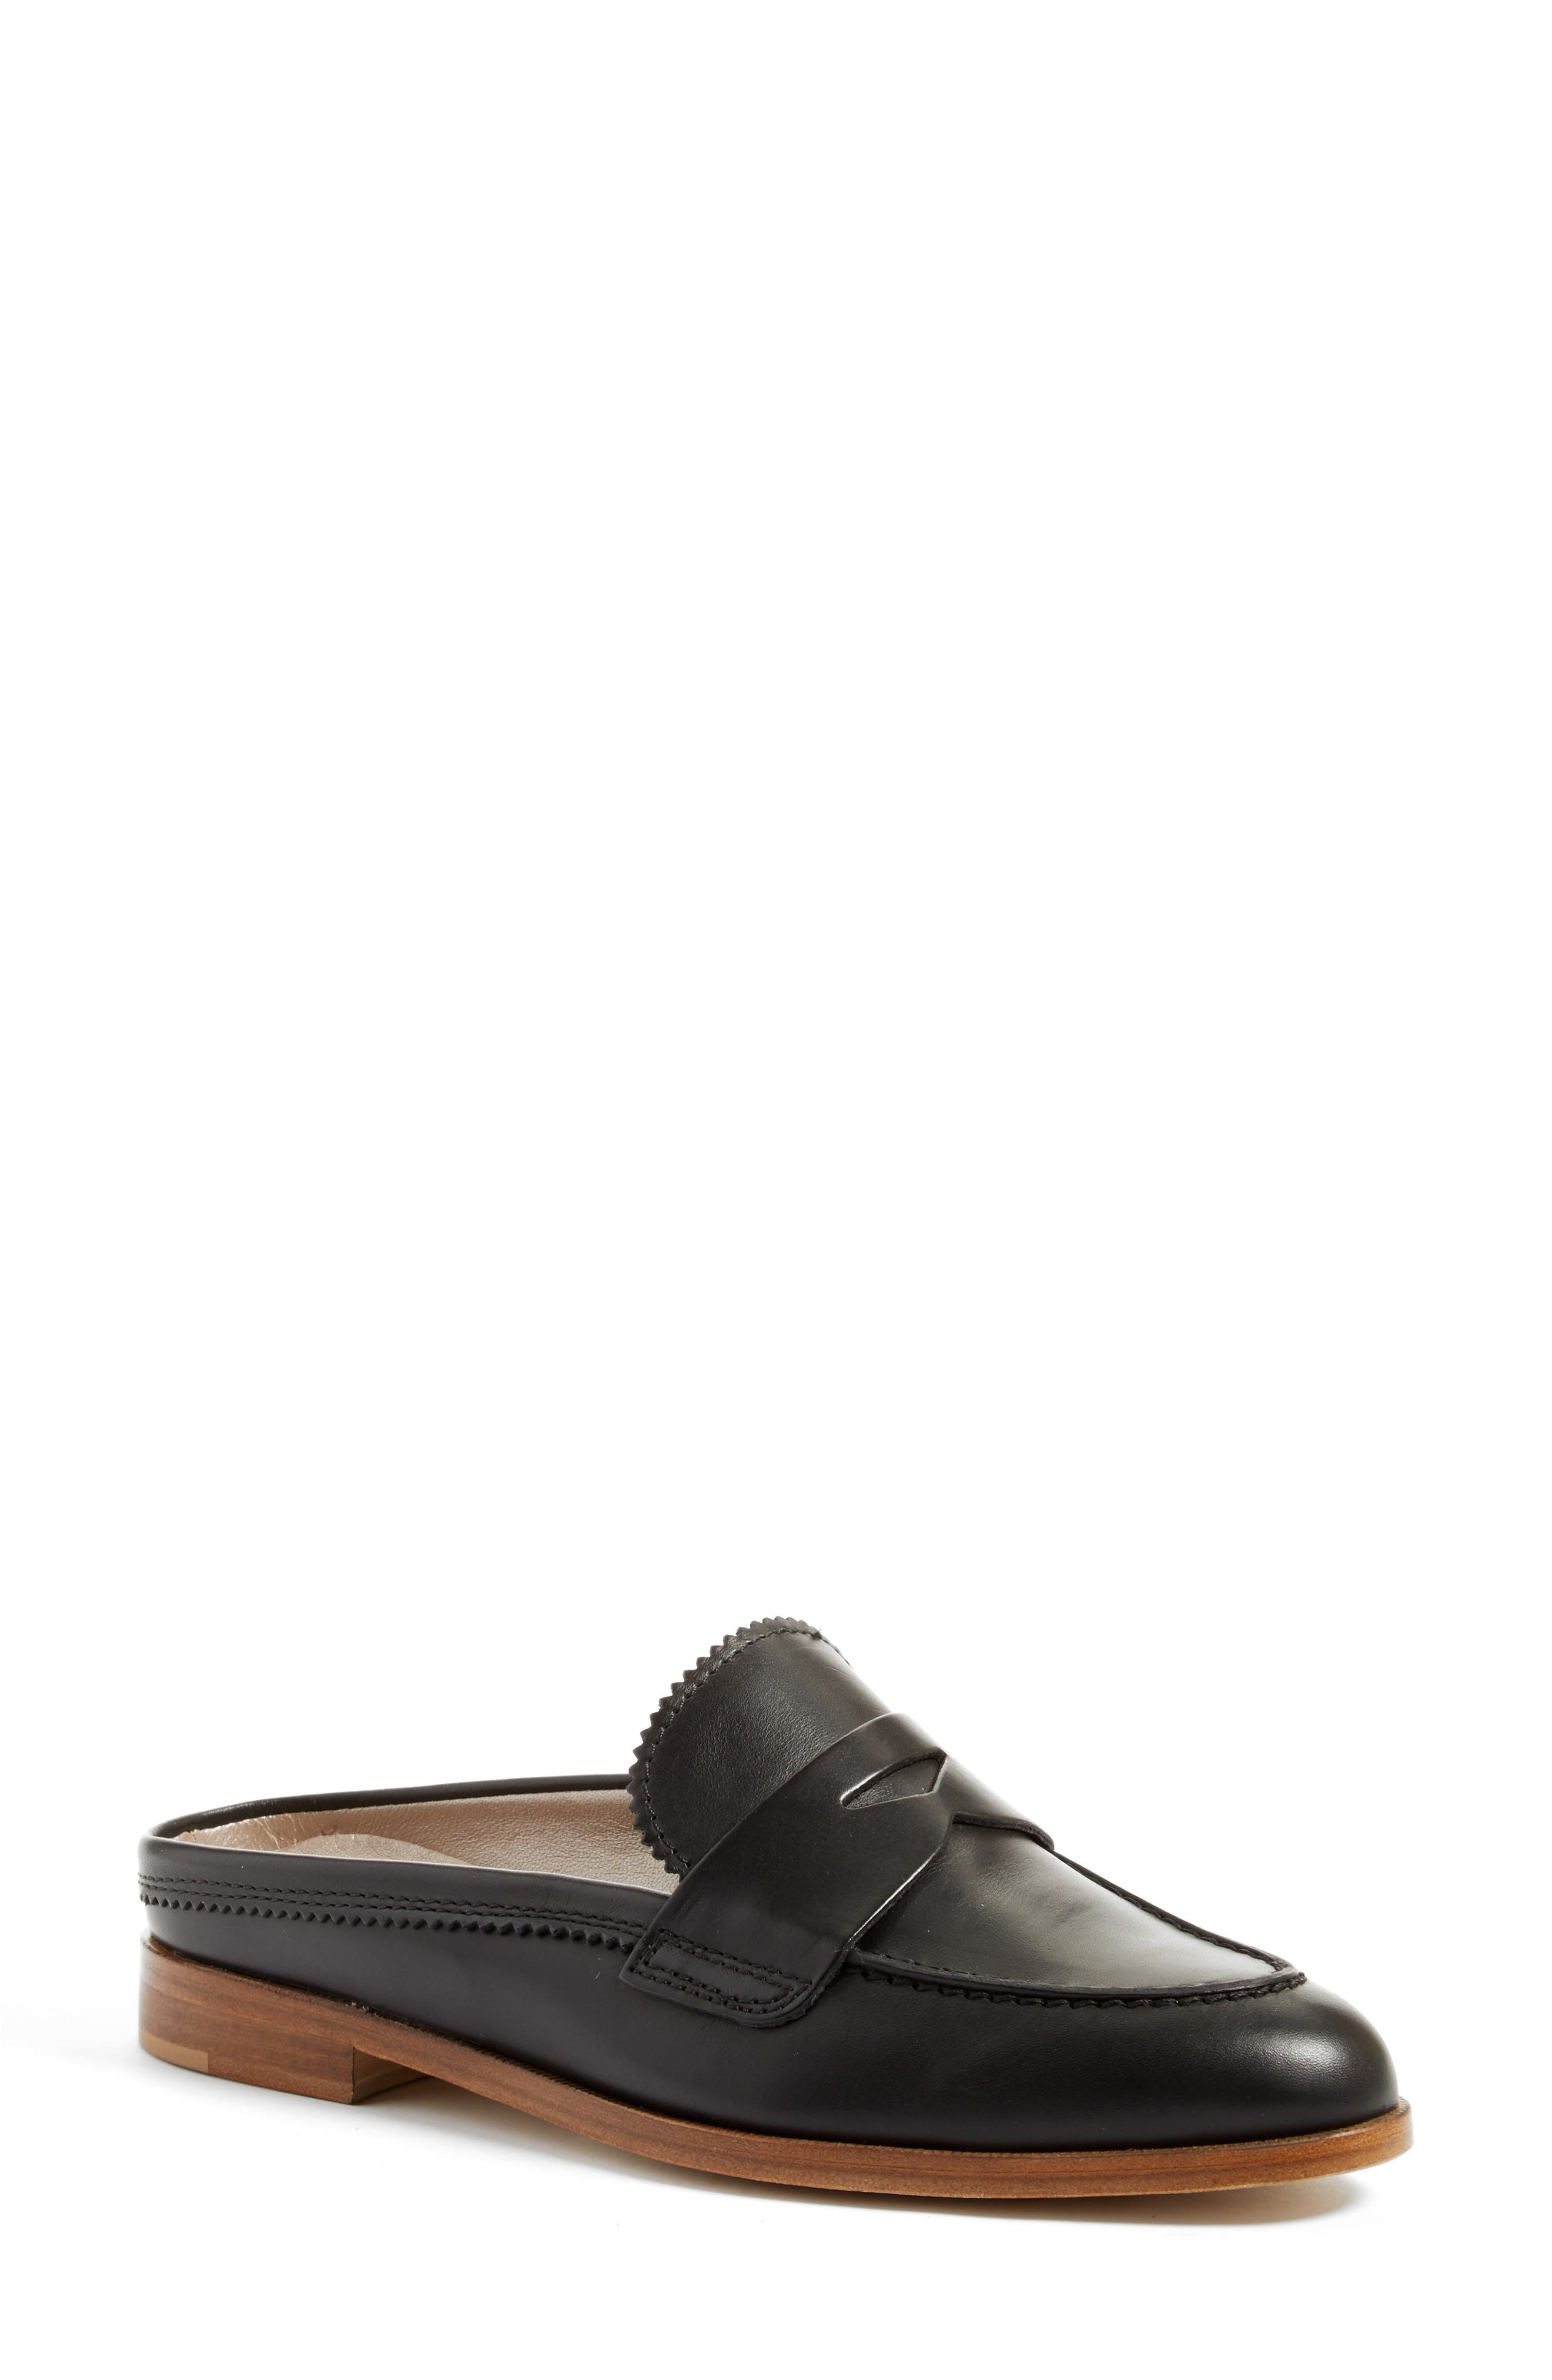 AGL, Penny Loafer Mule, Main thumbnail 1, color, 001